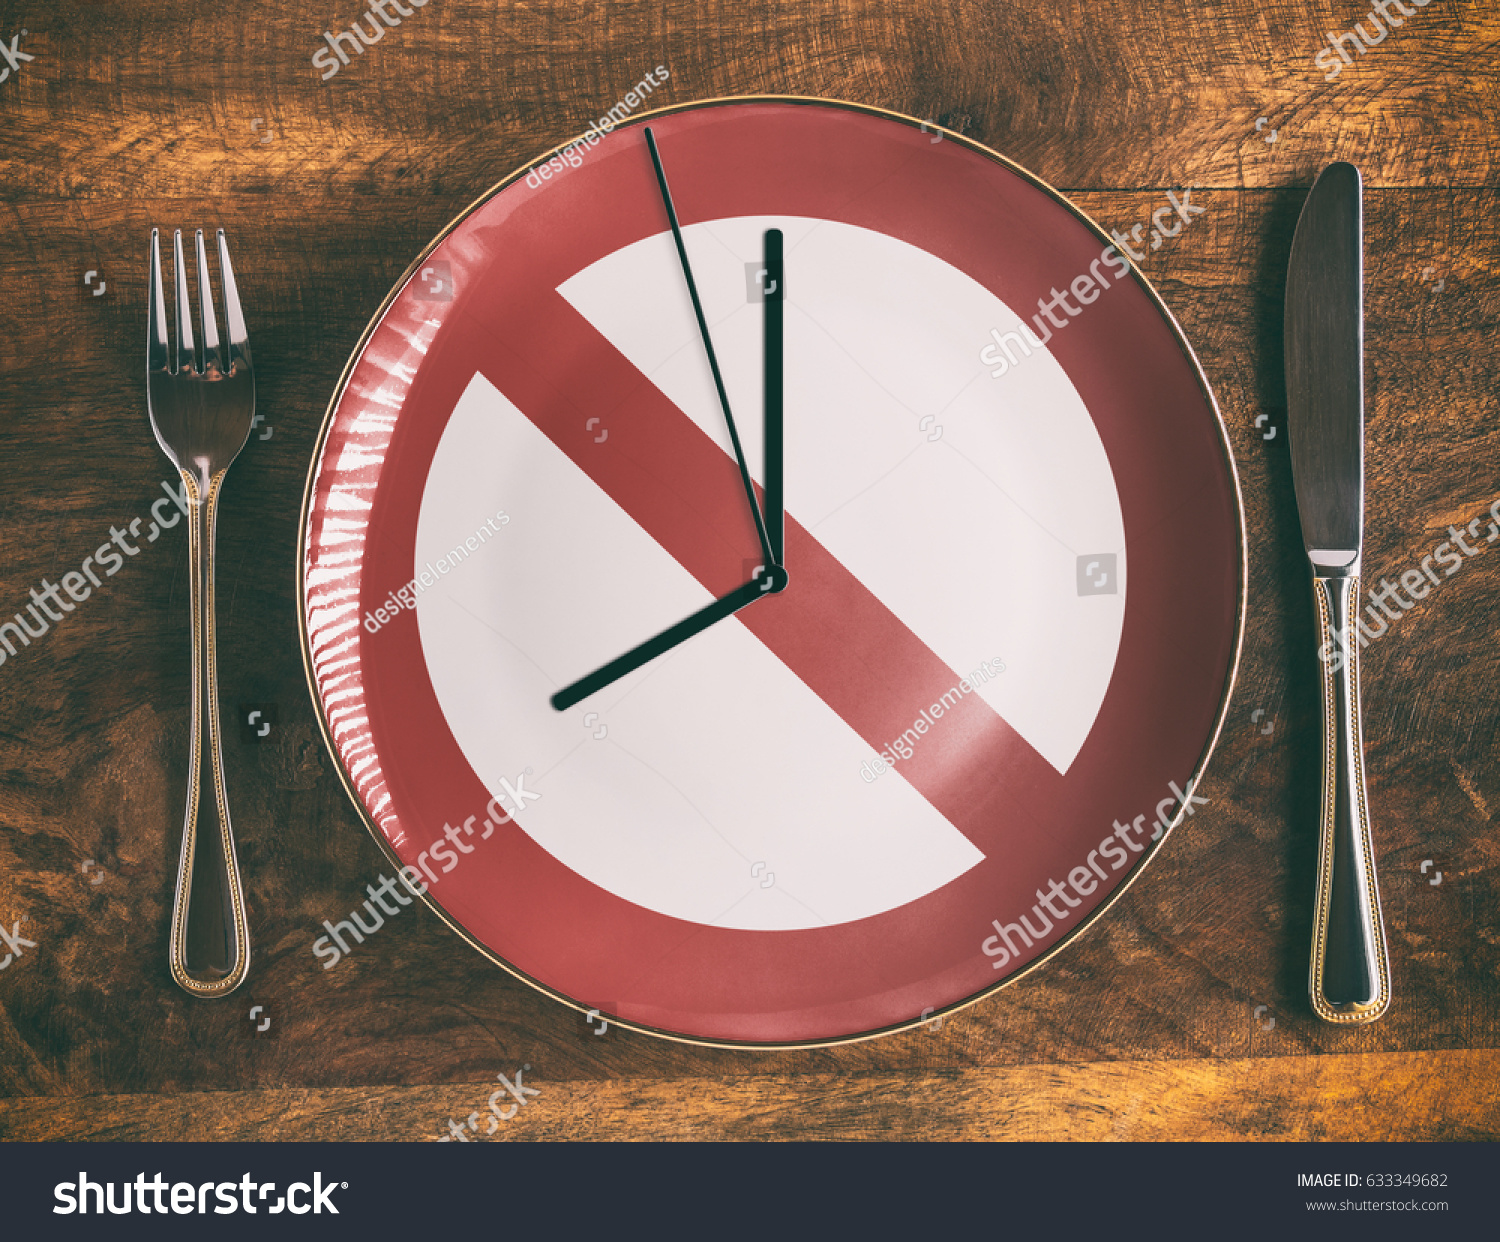 Skip breakfast concept with no symbol and clock on plate #633349682